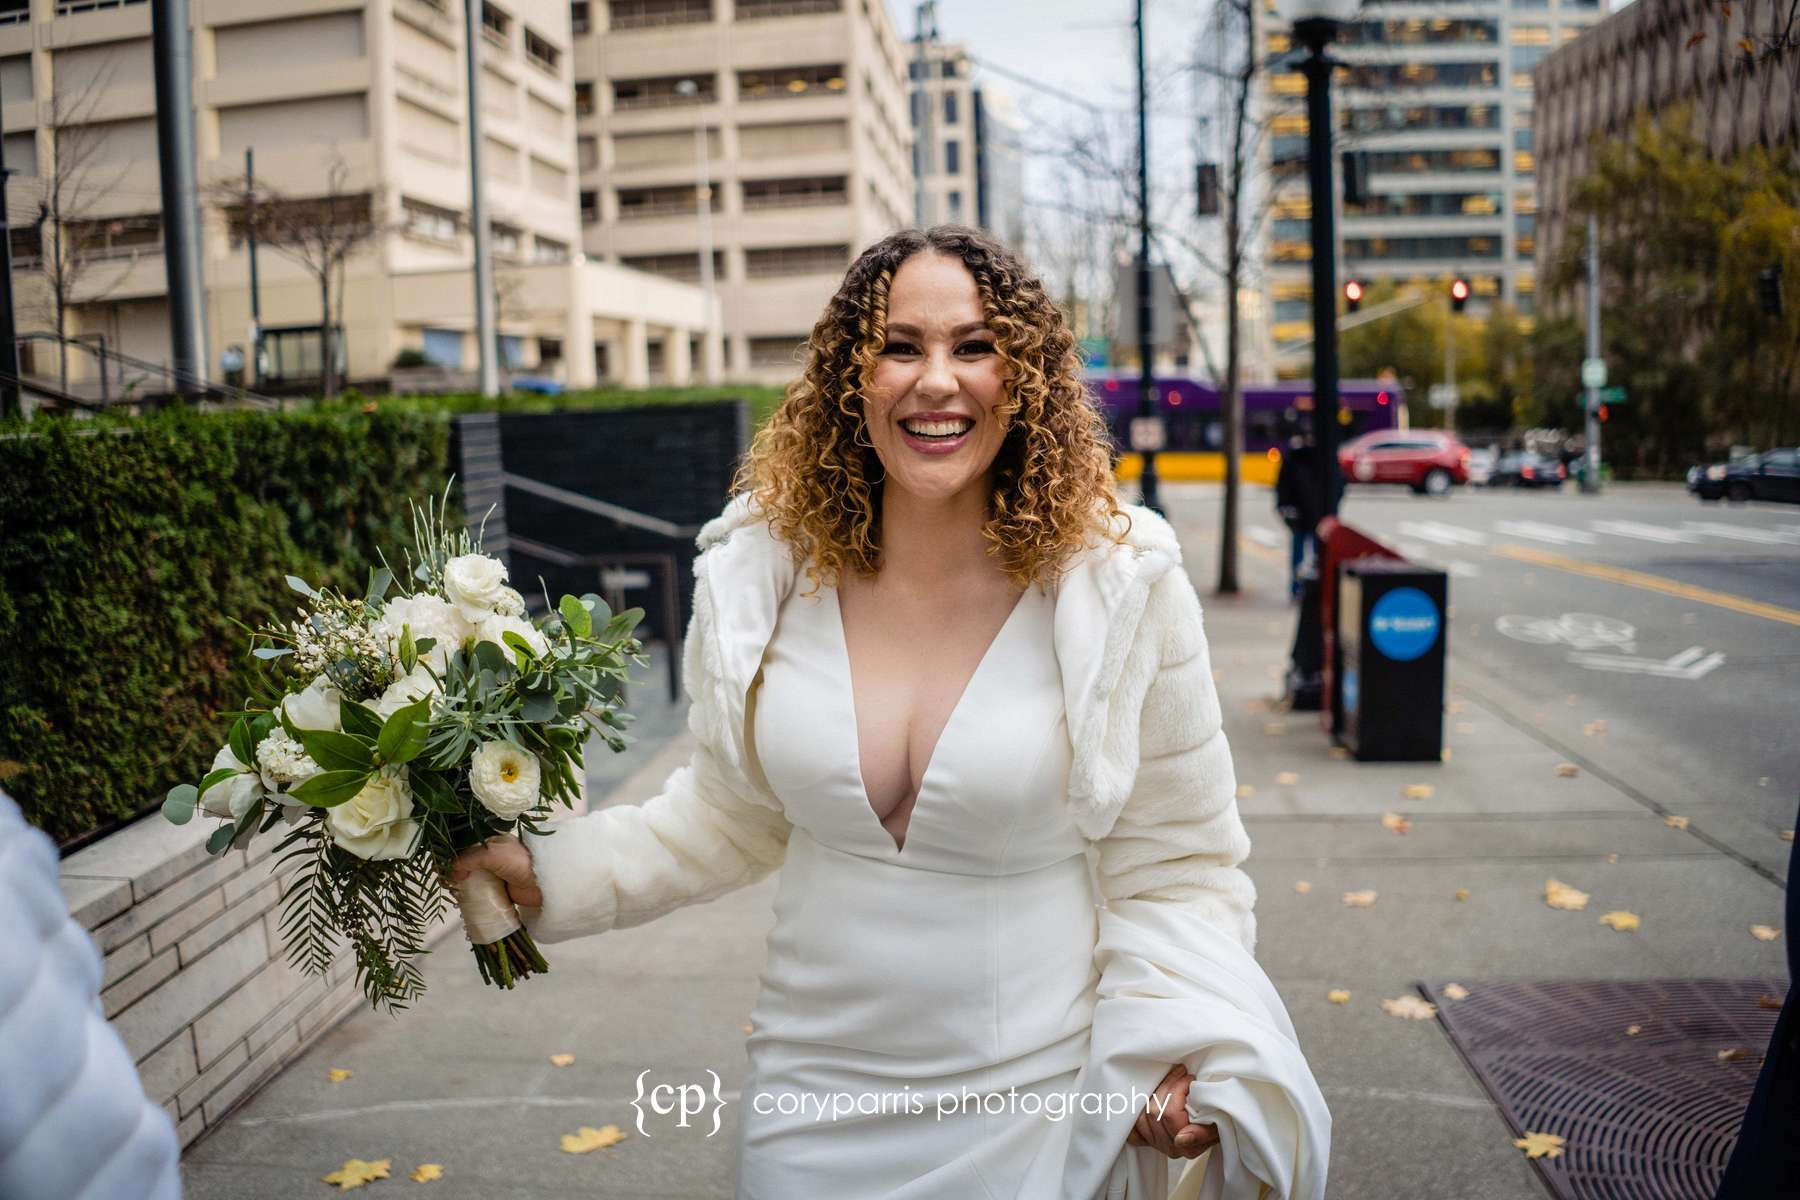 003-Seattle-Elope-Courthouse.jpg